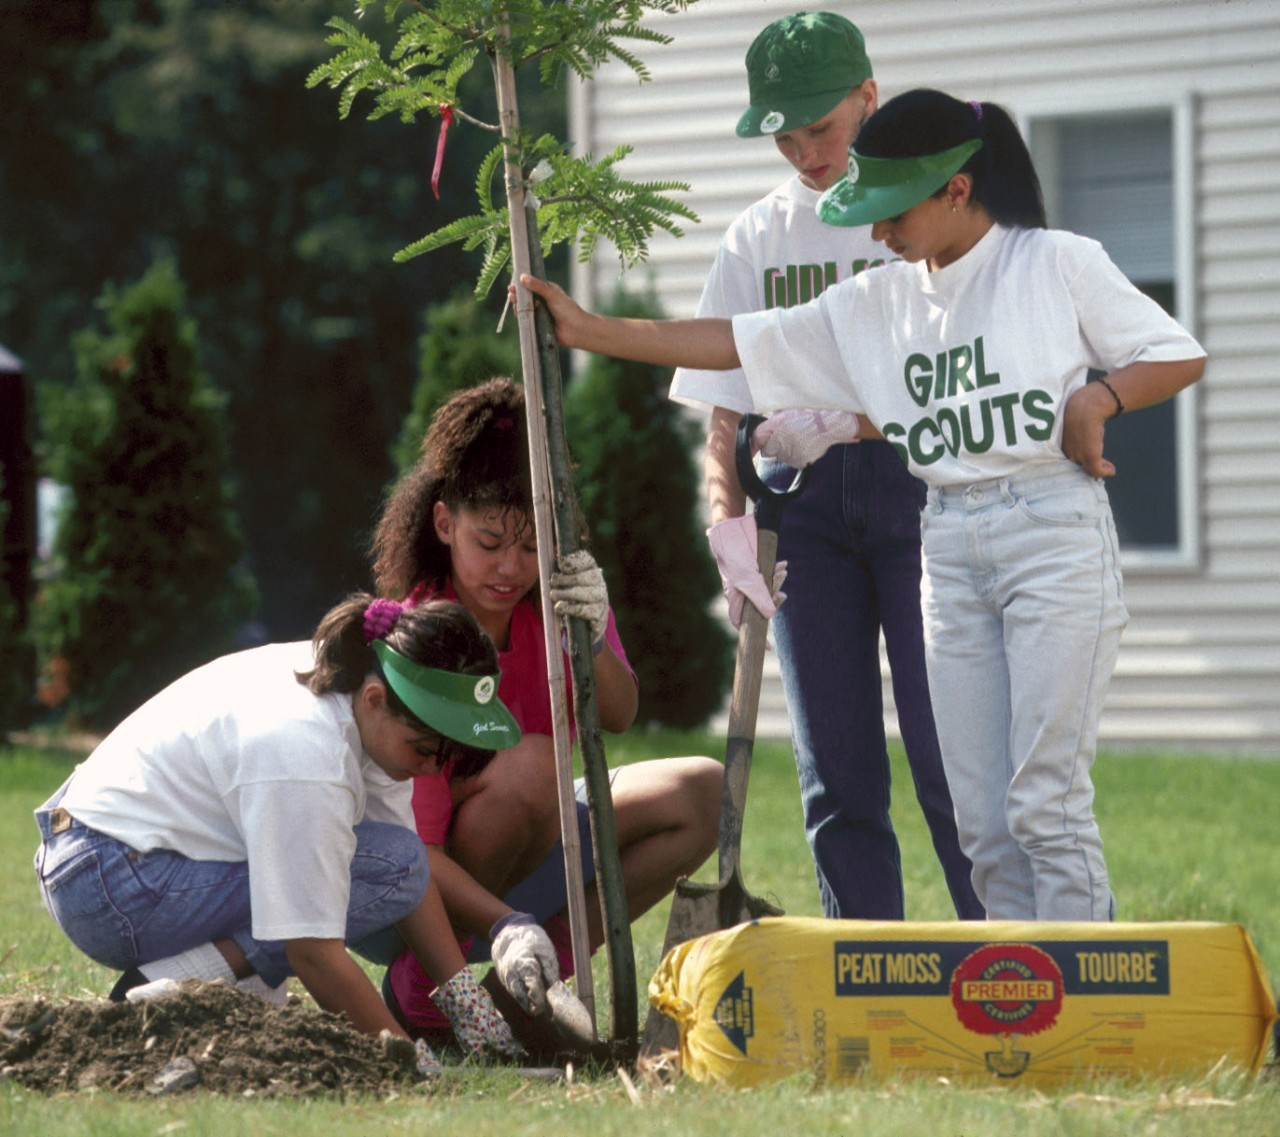 Girl Scouts plant a tree, circa 1990s